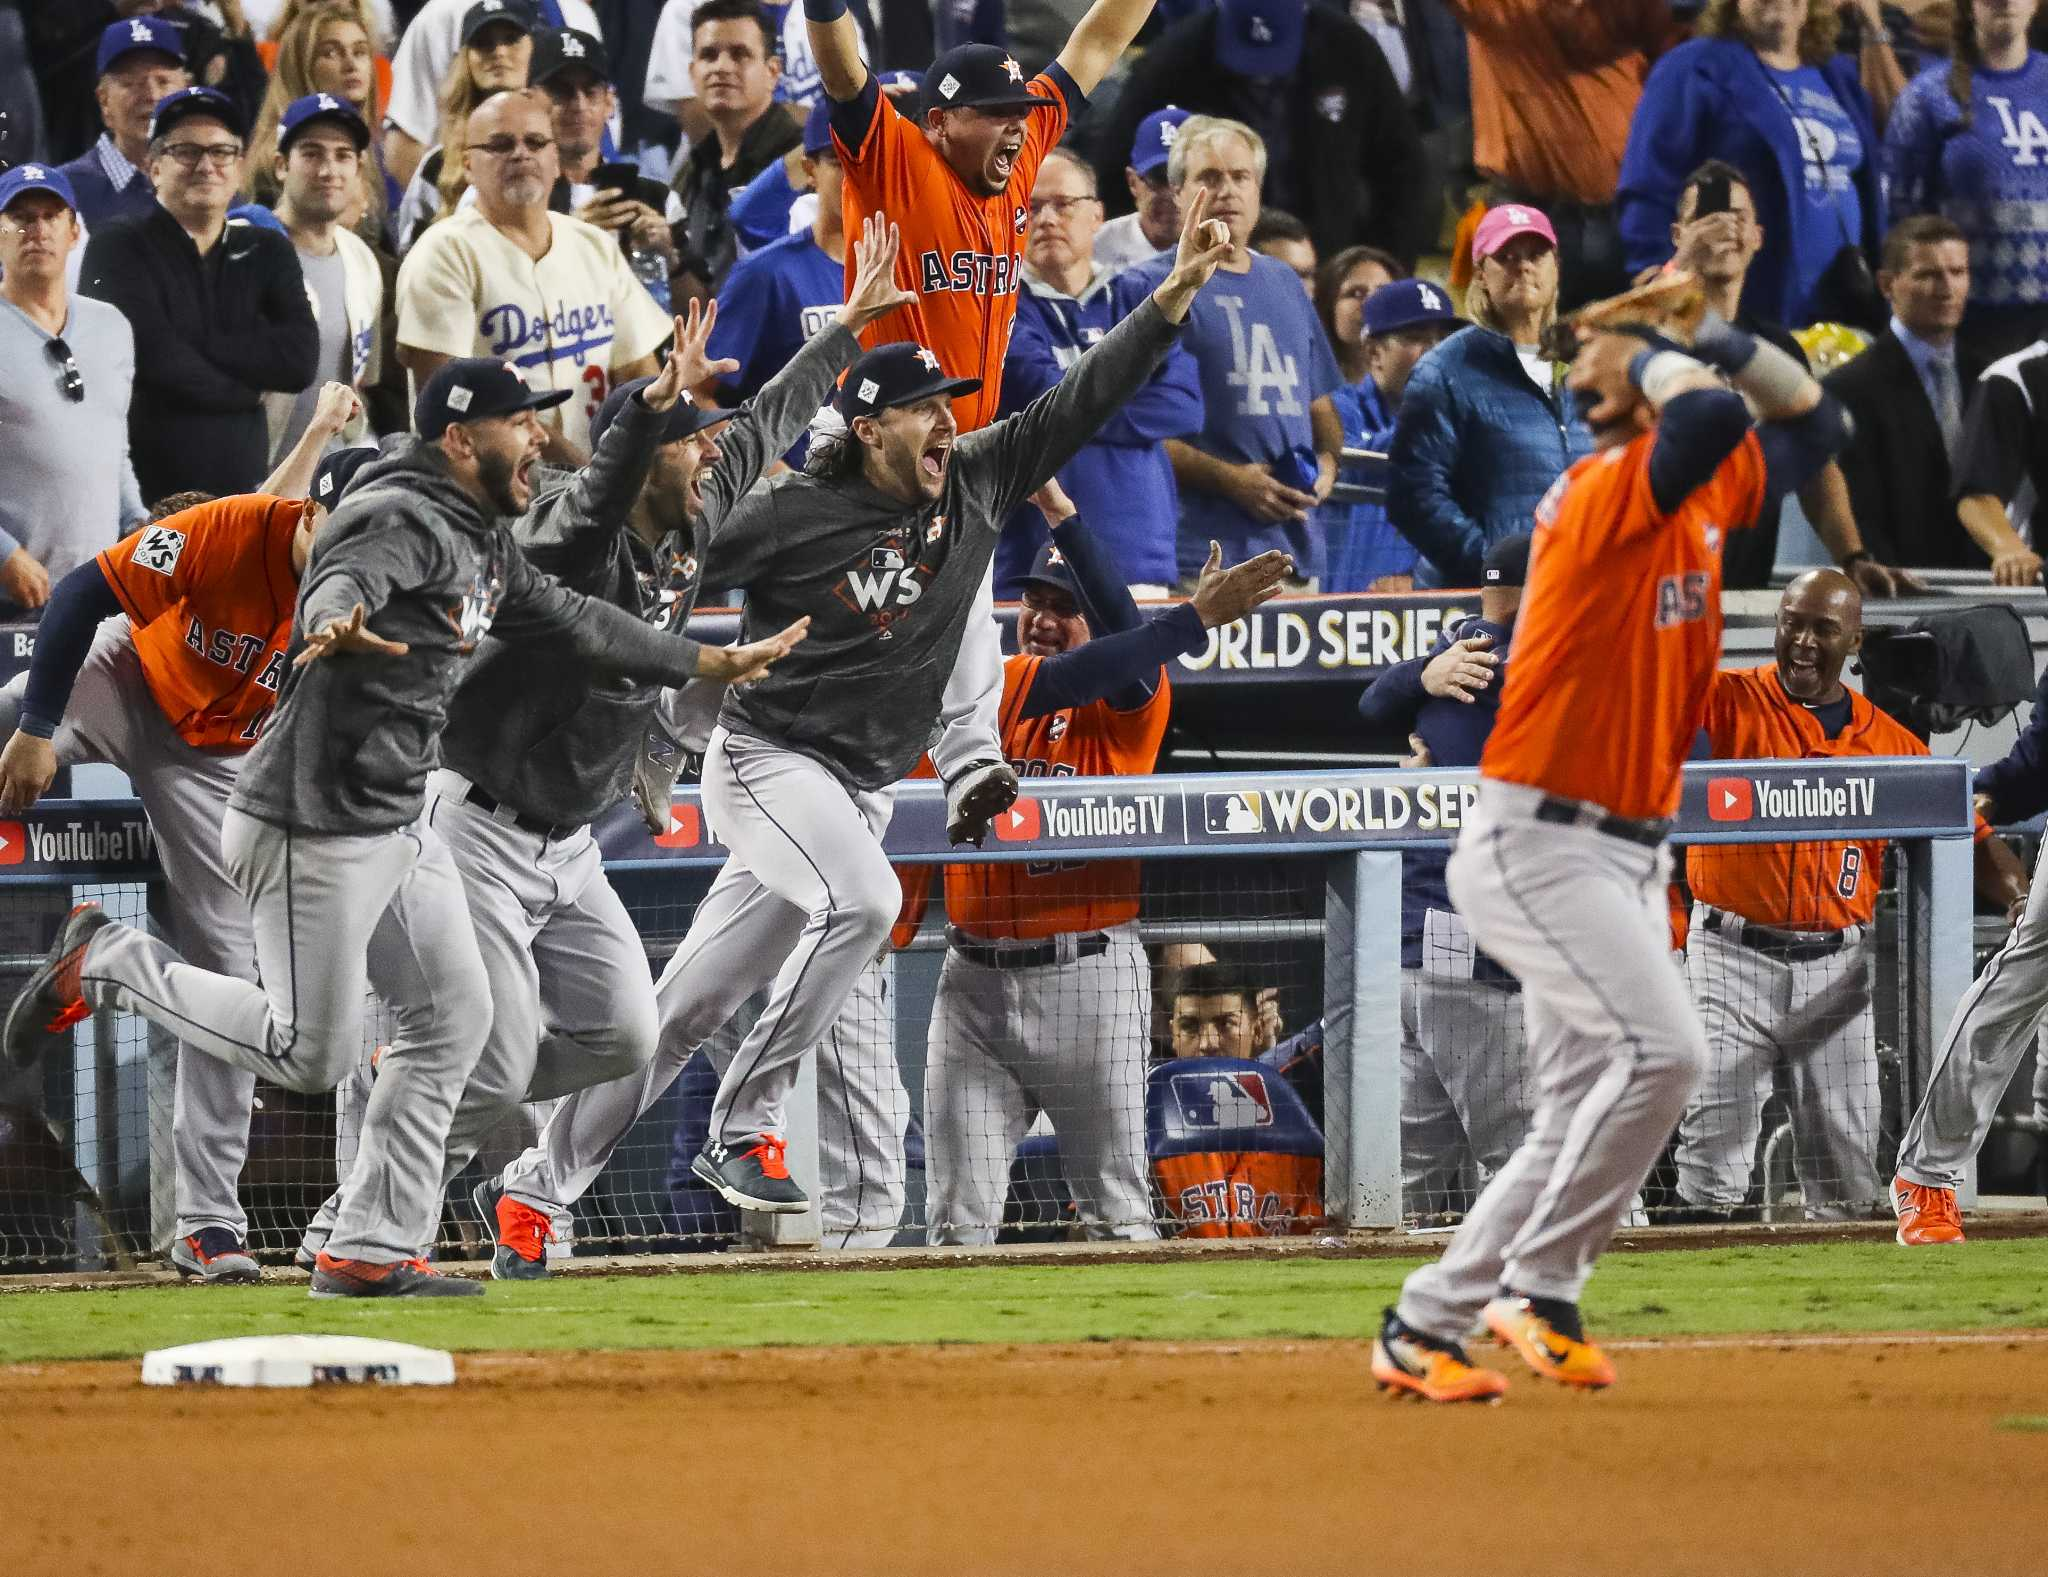 Happy anniversary to the Astros' World Series title